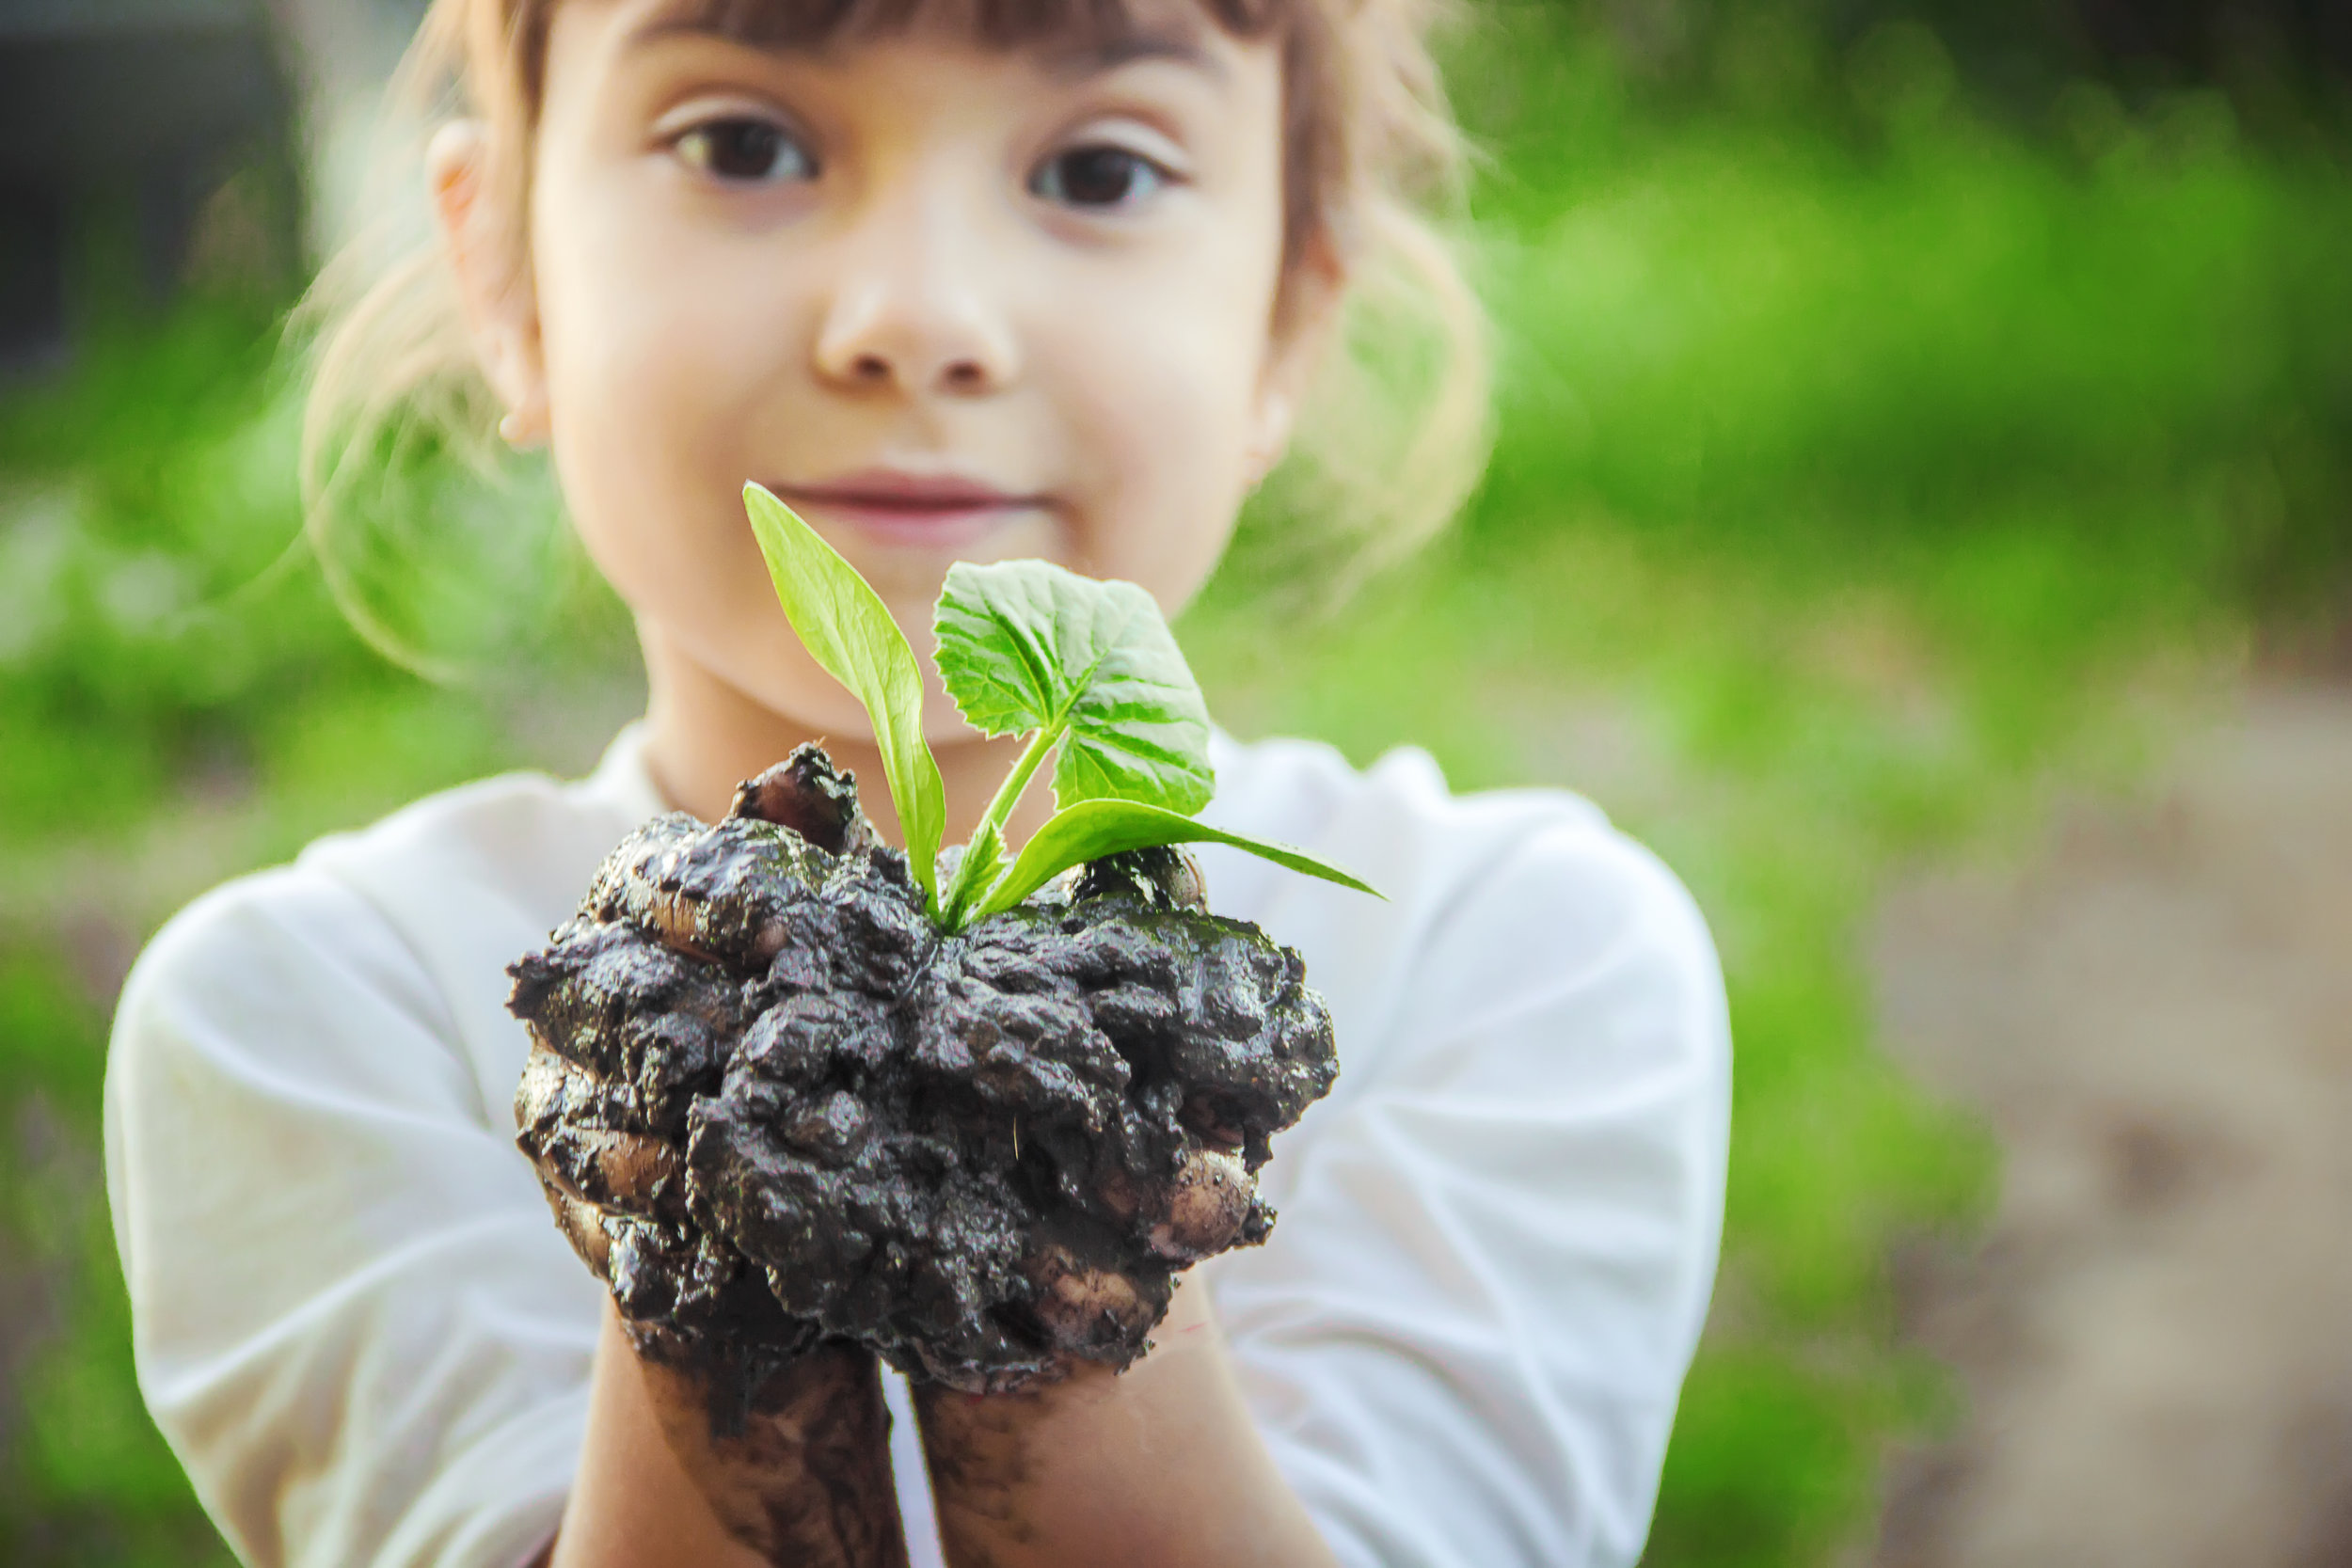 Benefits of children gardening - The benefits of gardening have been well documented and are great for promoting well-rounded development in children. Whether the garden is a yogurt pot on a windowsill, a community space, or a raised bed outside the back door, children who engage with it are harvesting so much more than food and flowers.